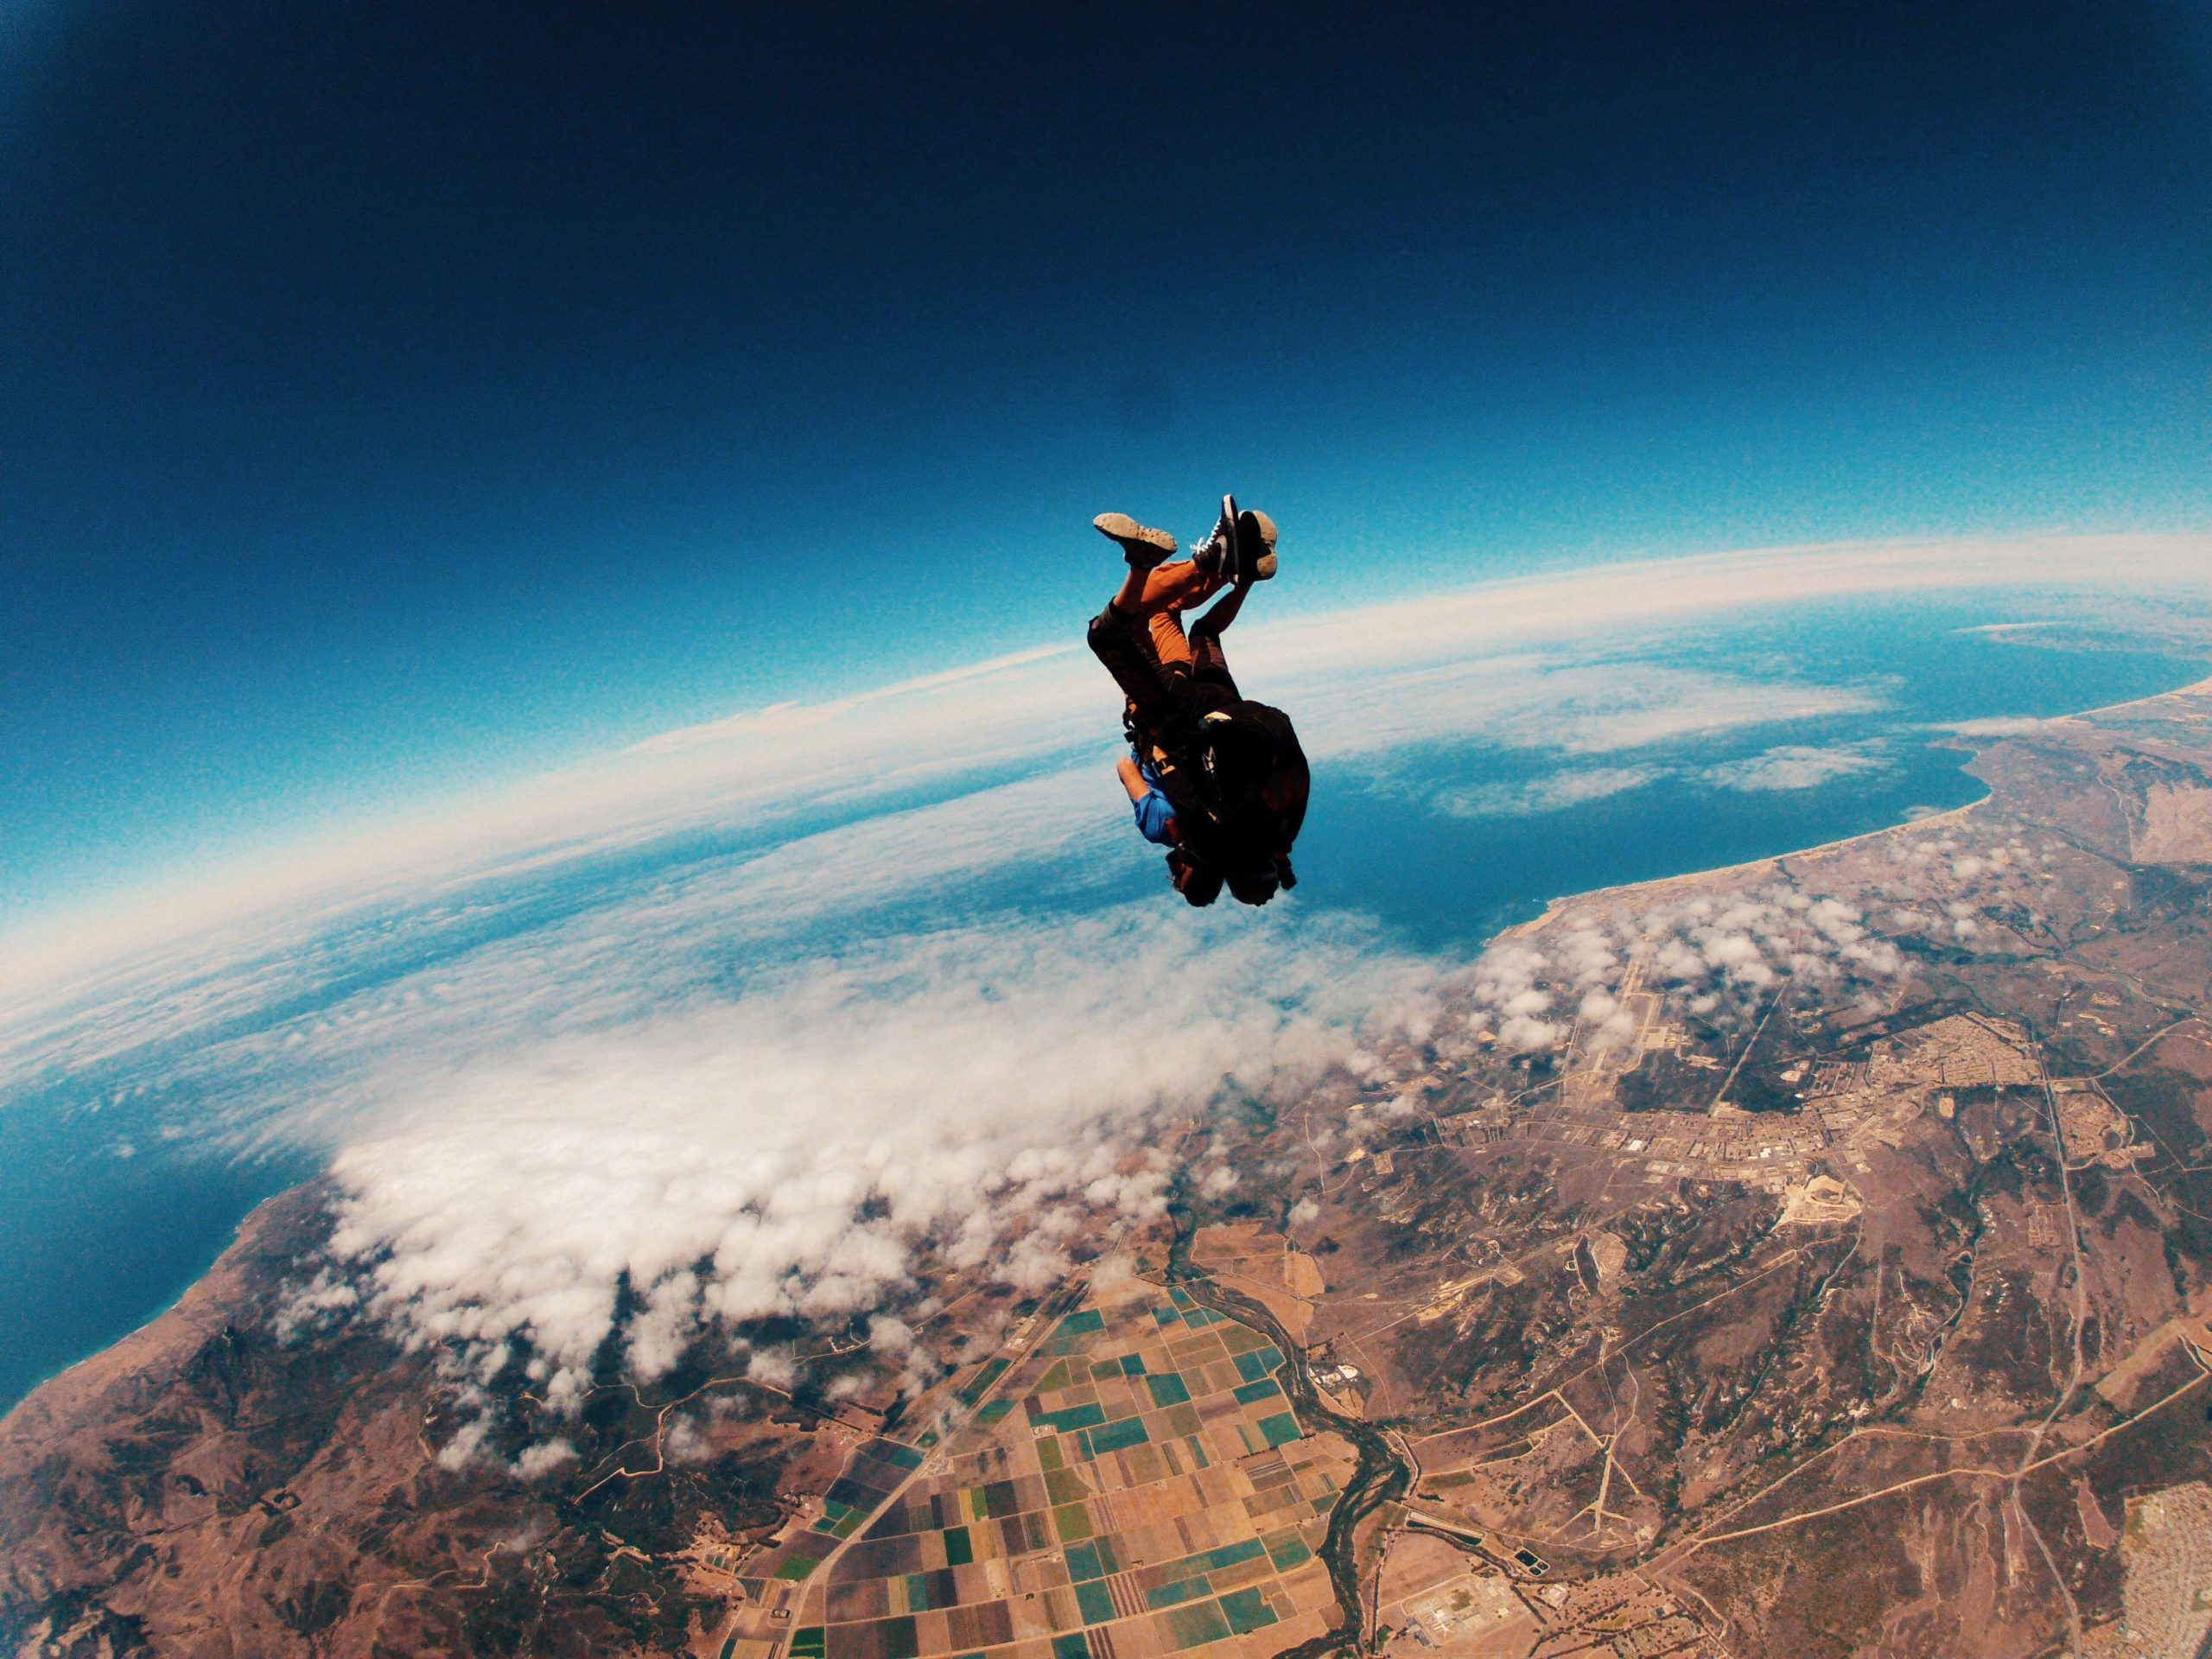 Aerial view of someone skydiving